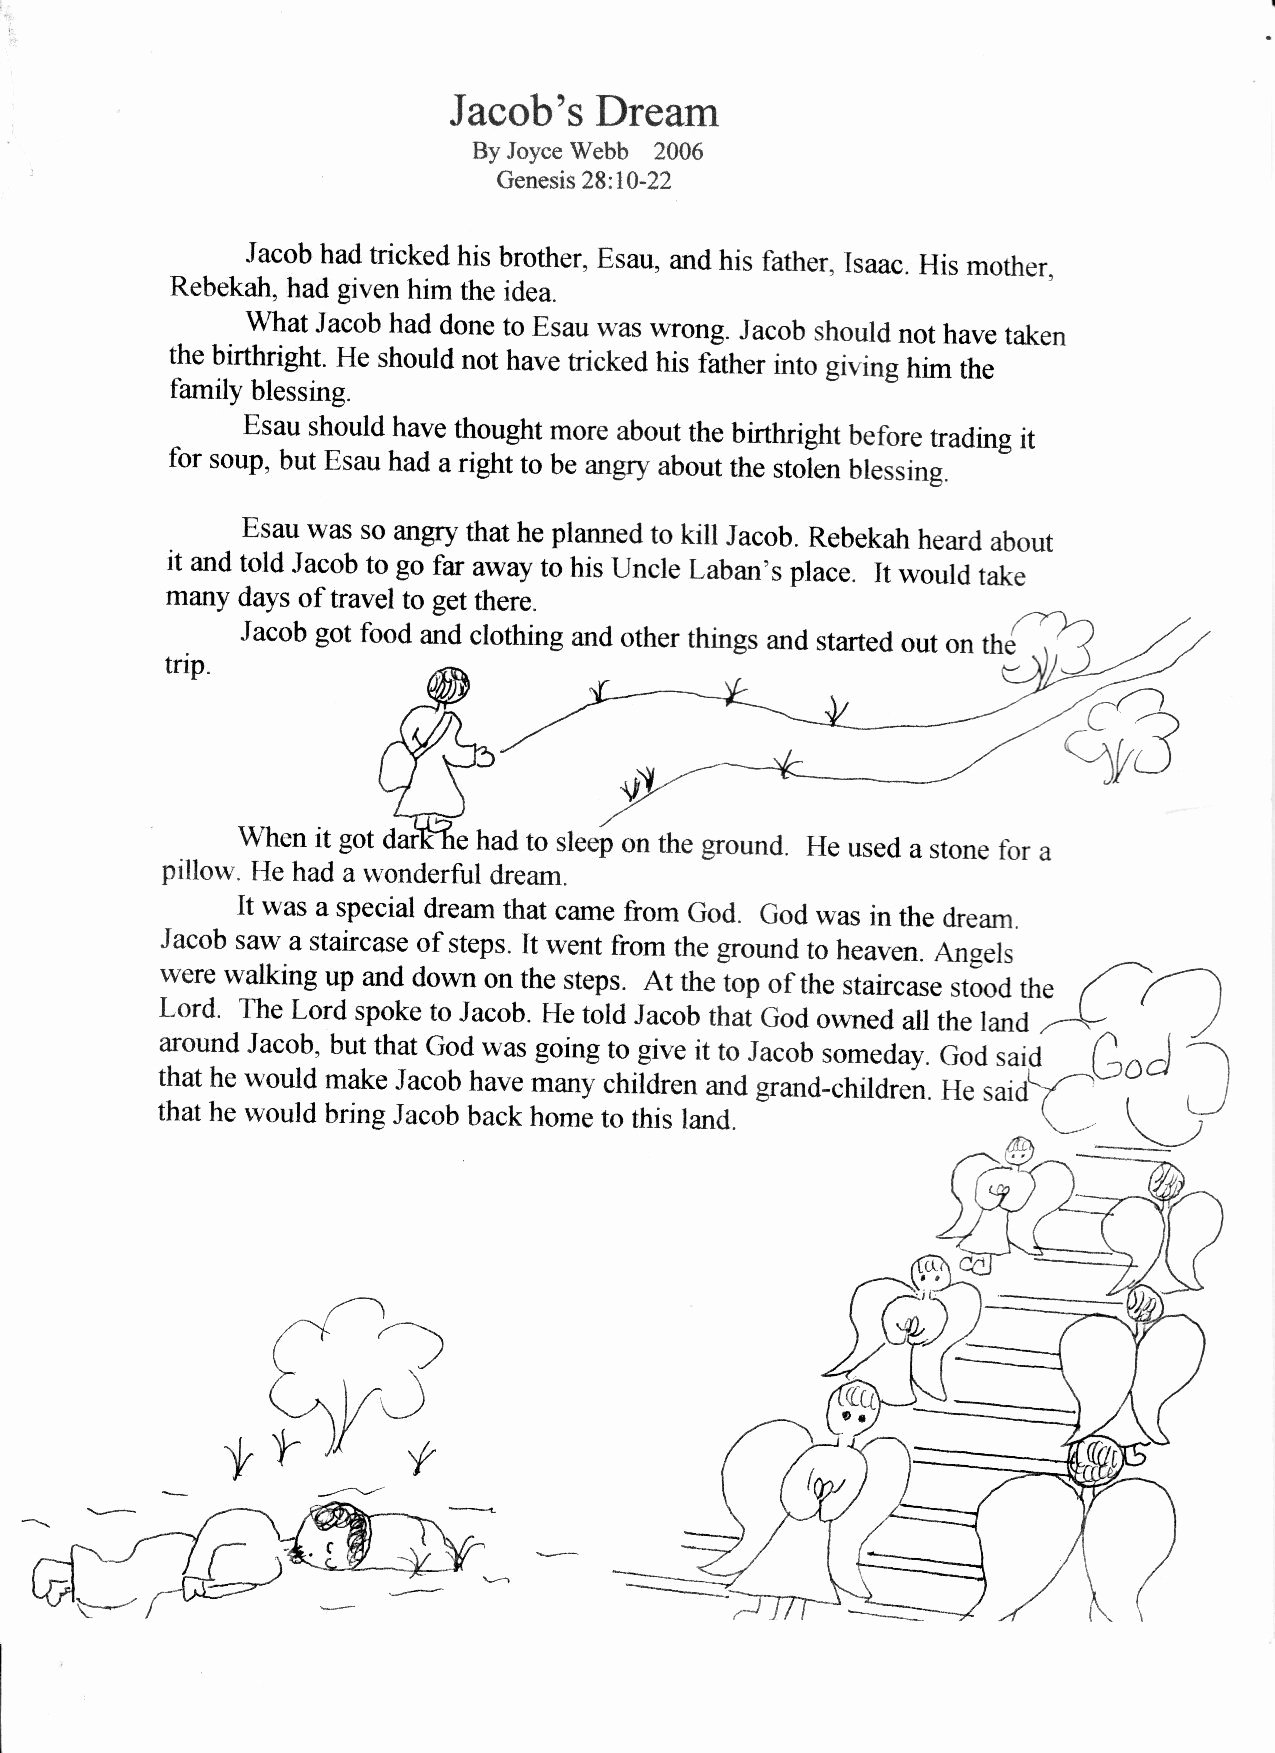 Bible Story Worksheets for Preschoolers Lovely Bible Worksheets Jacob S Dream with Images